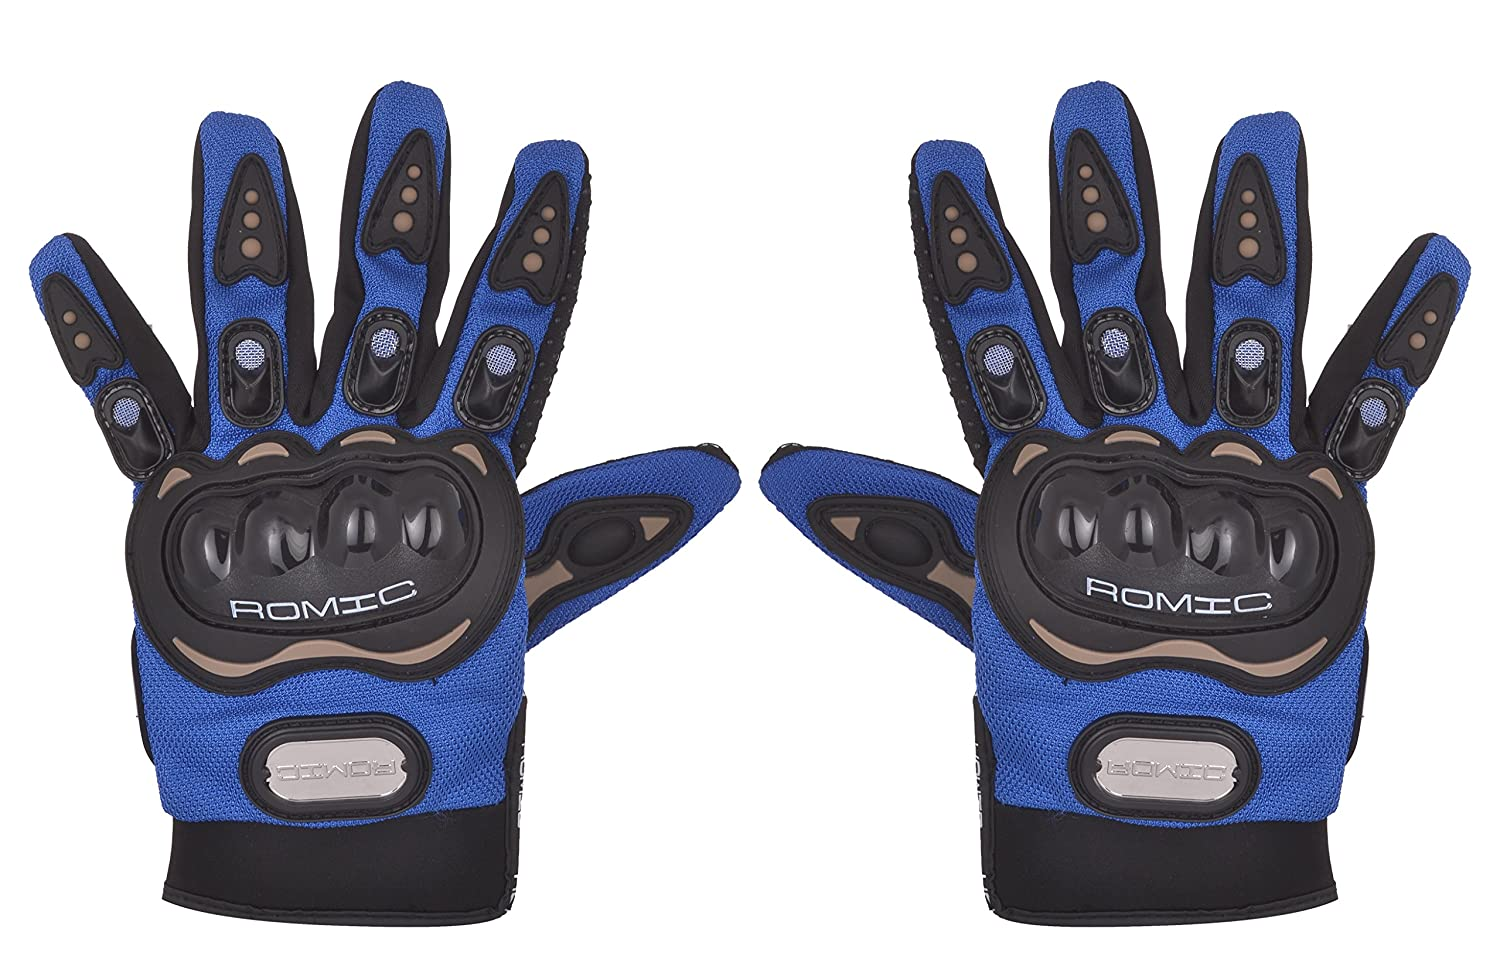 Upto 70% Off On Car & Motor Bike Accessories By Amazon | Romic Leather Motorcycle Full Gloves (Blue, Large) @ Rs.325